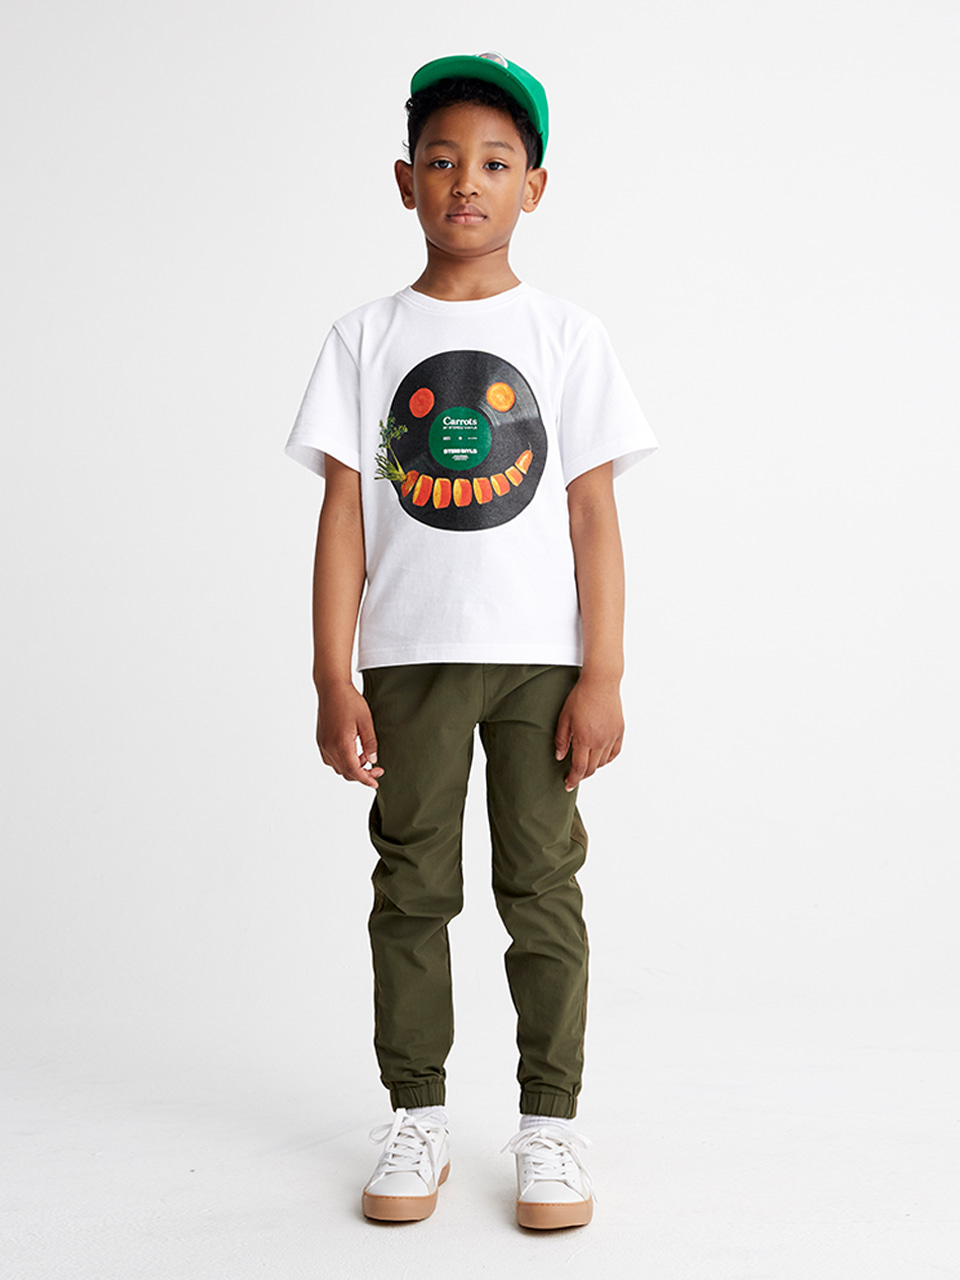 [SS20 SV X Carrots] Smile Carrots T-Shirts for Kids(White) STEREO-SHOP